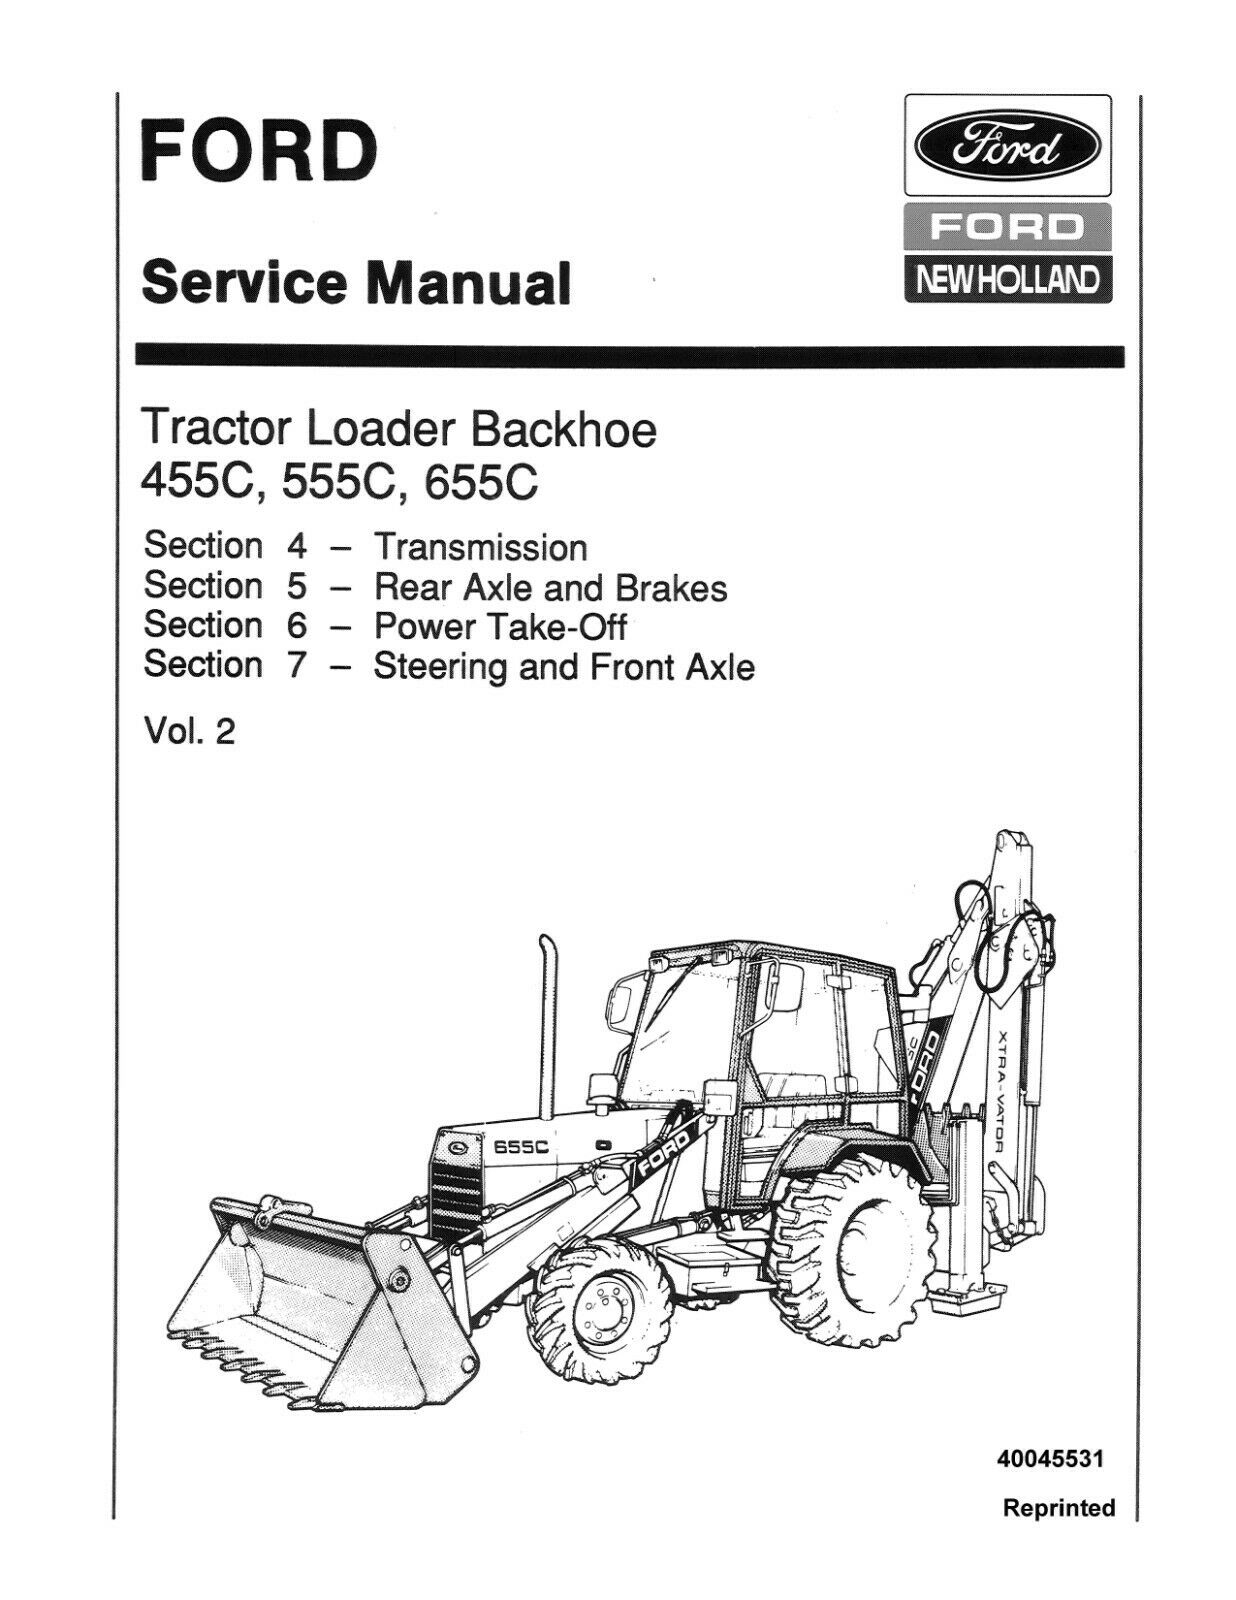 Ford Tractor Power Steering Gear Box Further Ford 5000 Wiring Diagram